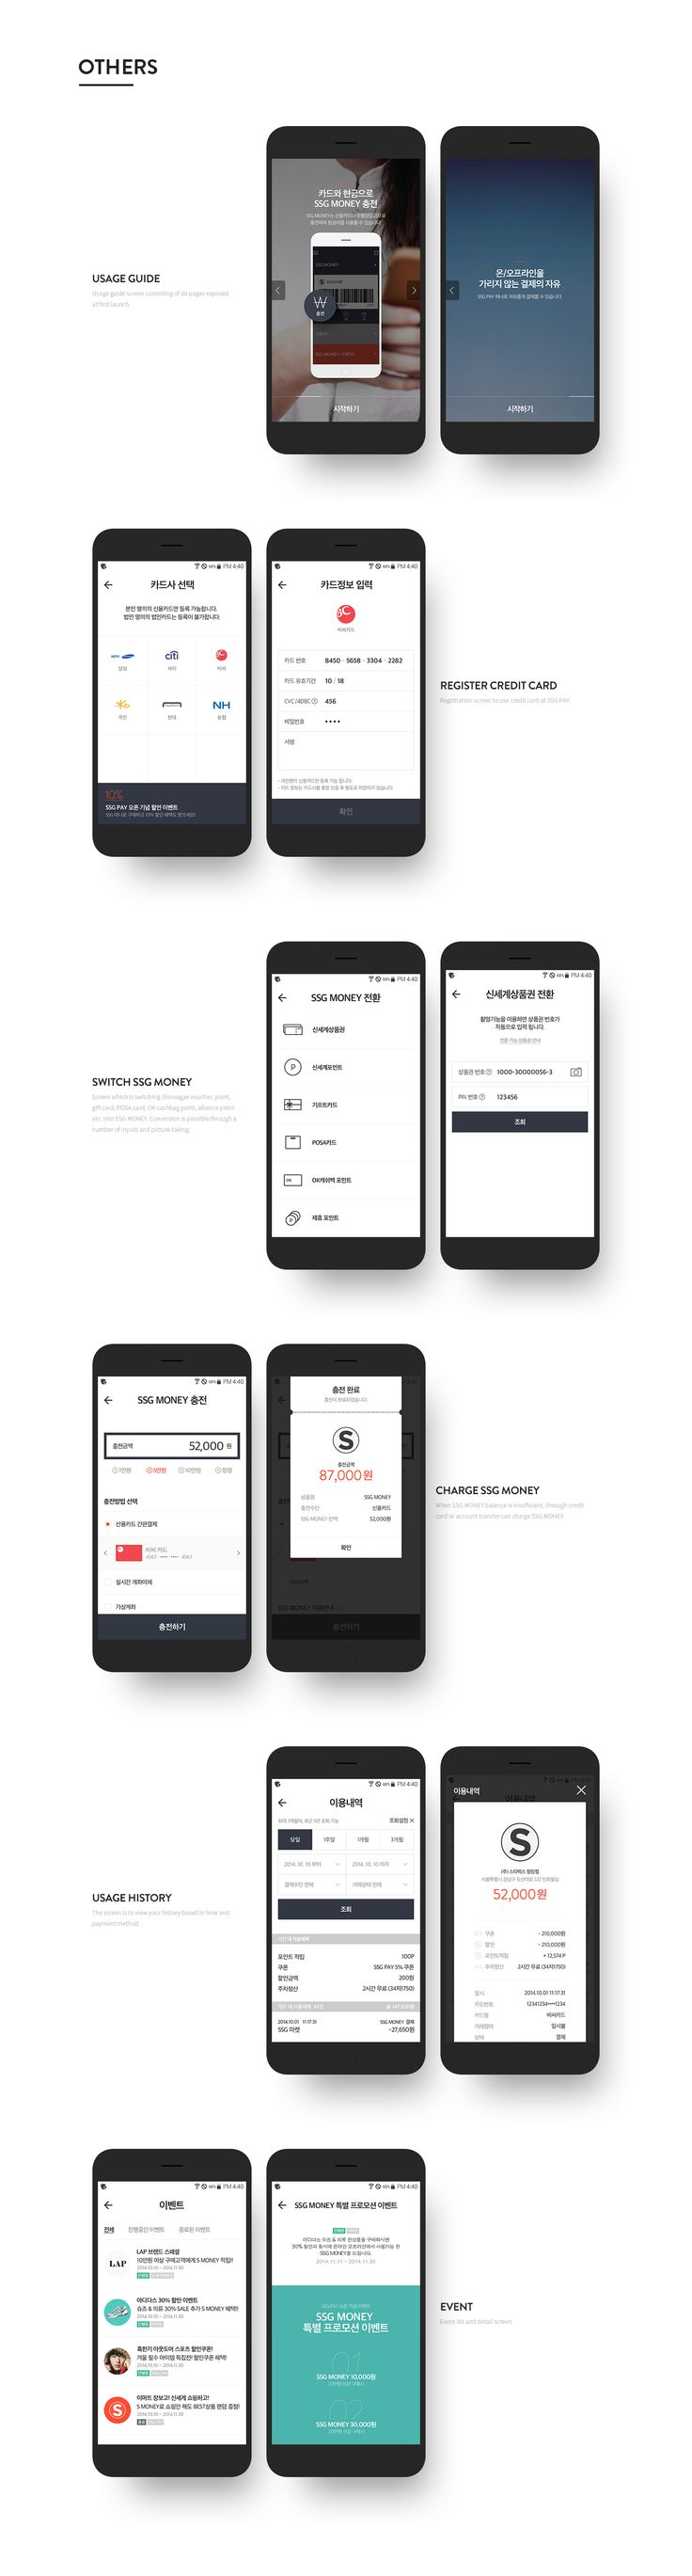 SSG PAY is the mobile service which can pay as a credit card, cash, voucher, and point at once  in online/offline store.SSG PSY는 신용카드, 현금, 상품권 포인트를 온/오프라인 매장에서 한번에 결제할 수 있는 모바일 서비스 입니다.